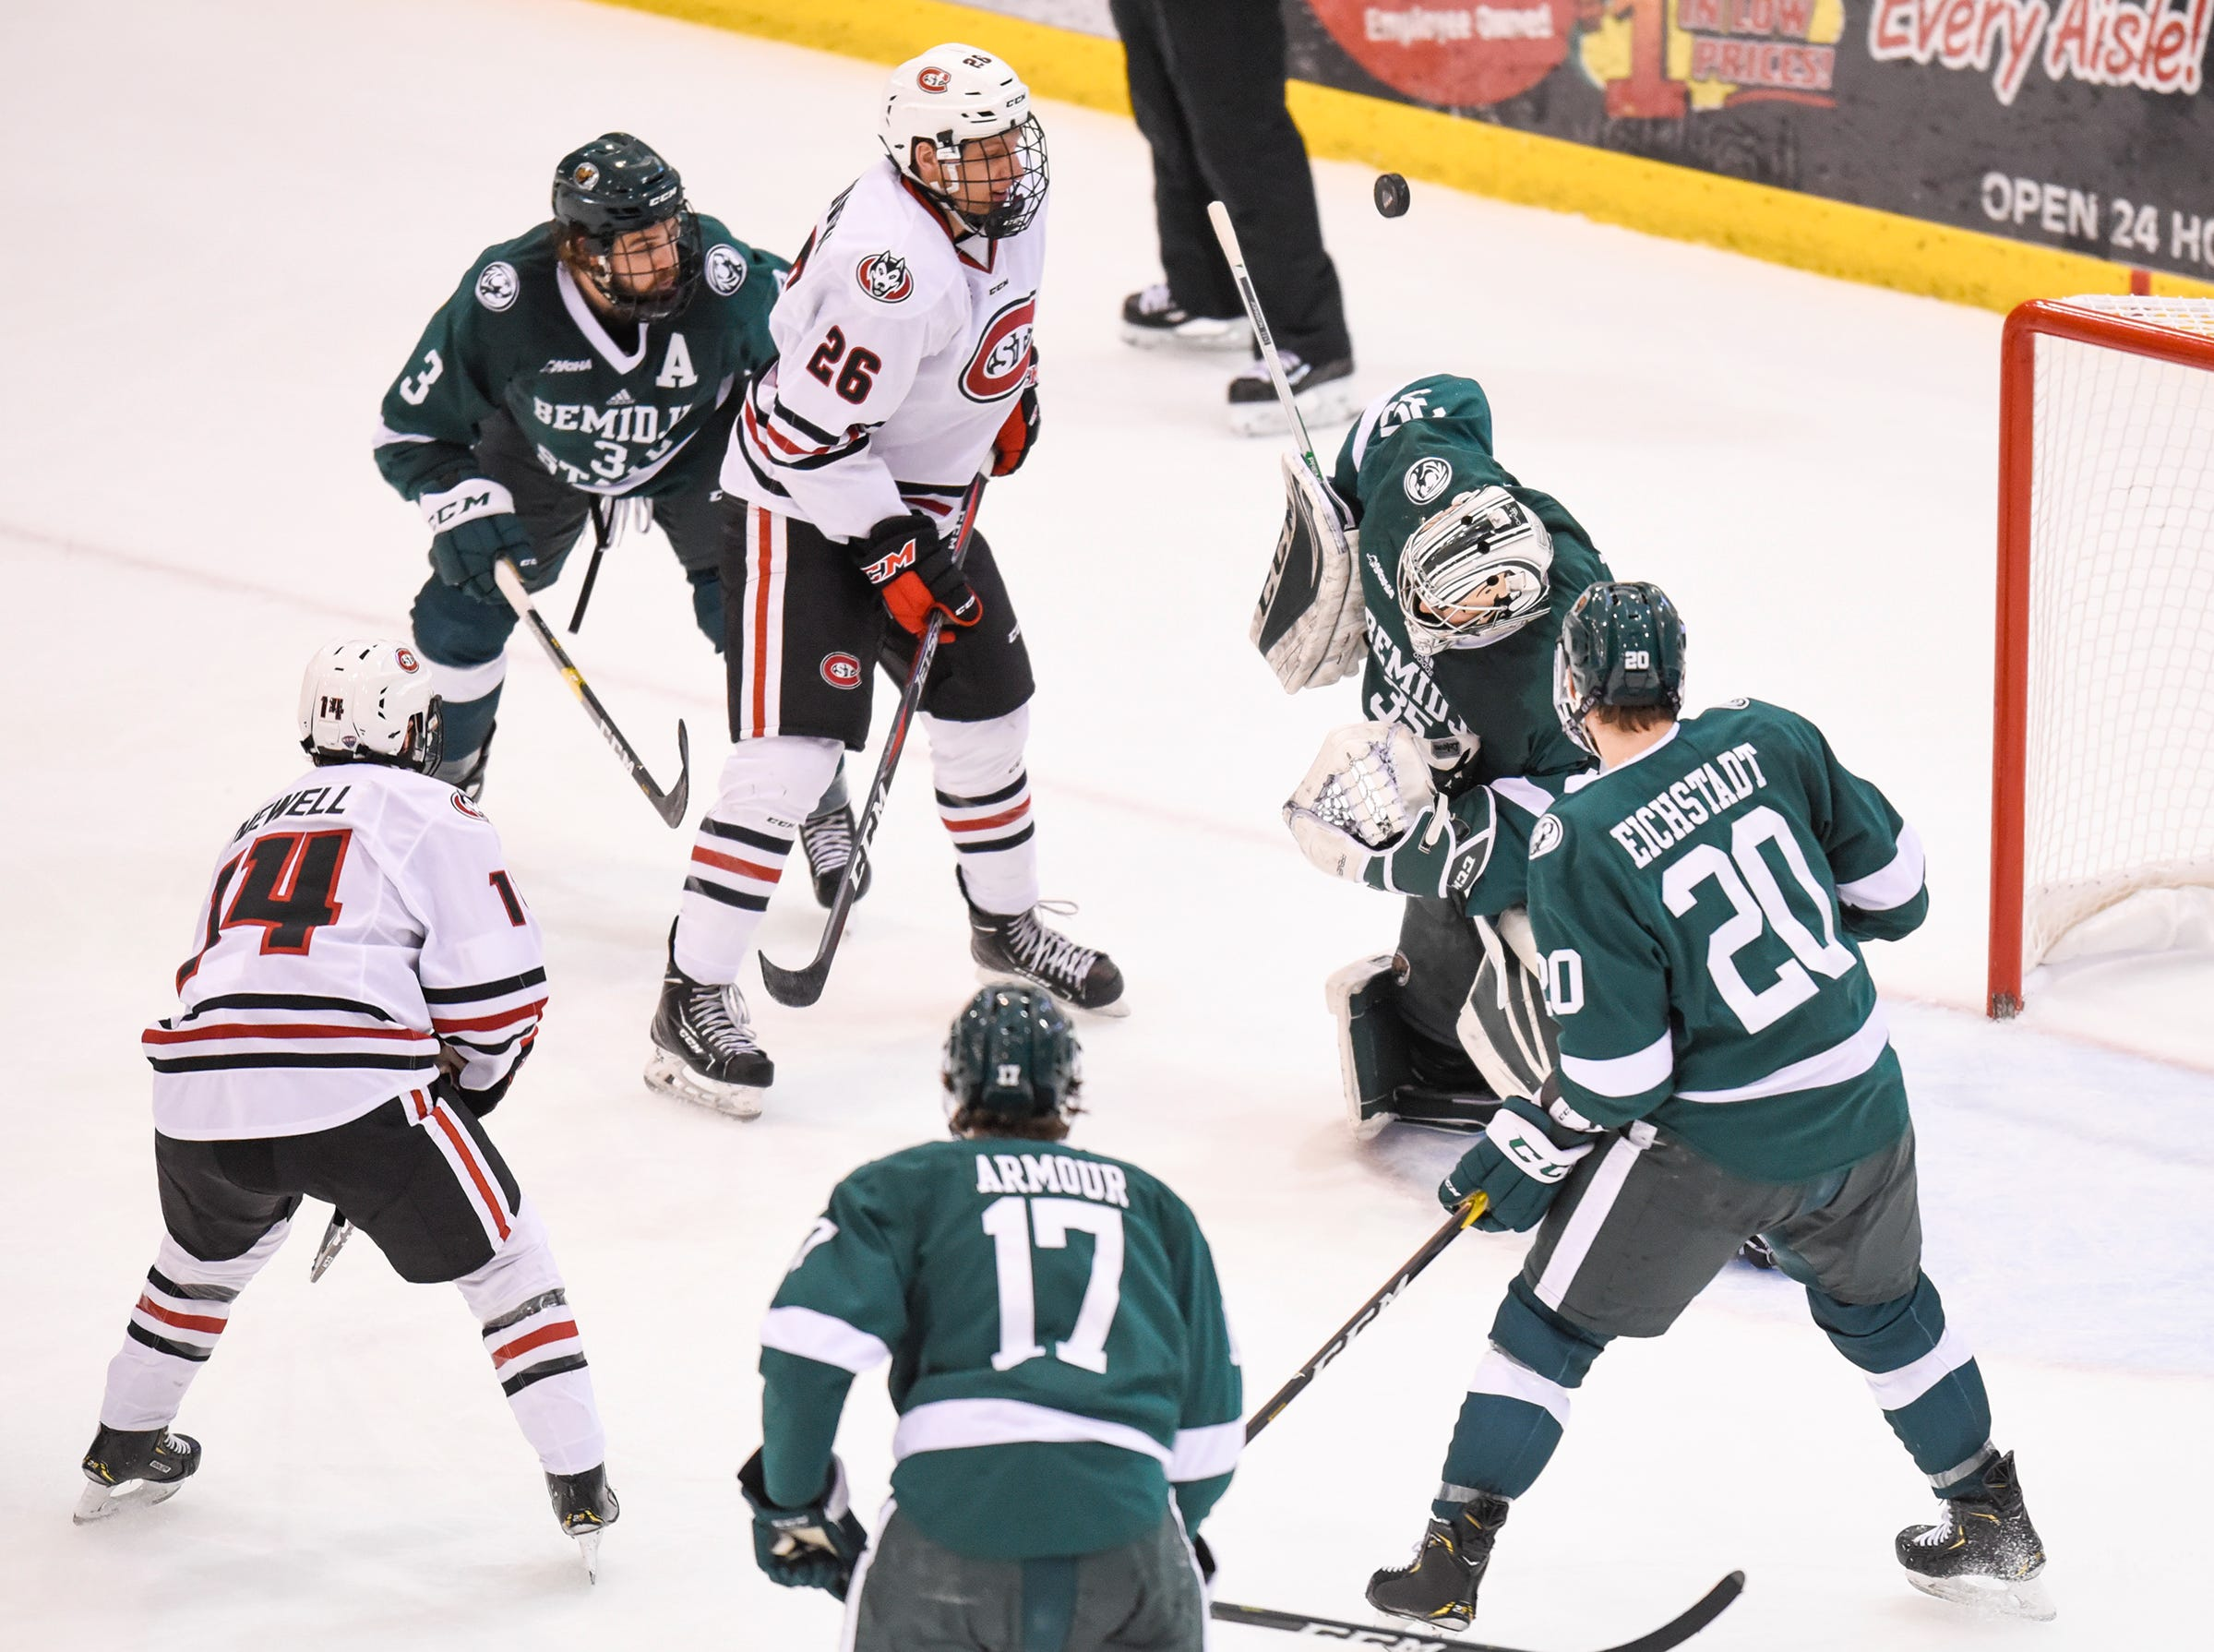 The puck bounces high over Bemidji State goaltender Henry Johnson during the second period of the Friday, Nov. 16, game at the Herb Brooks National Hockey Center in St. Cloud.